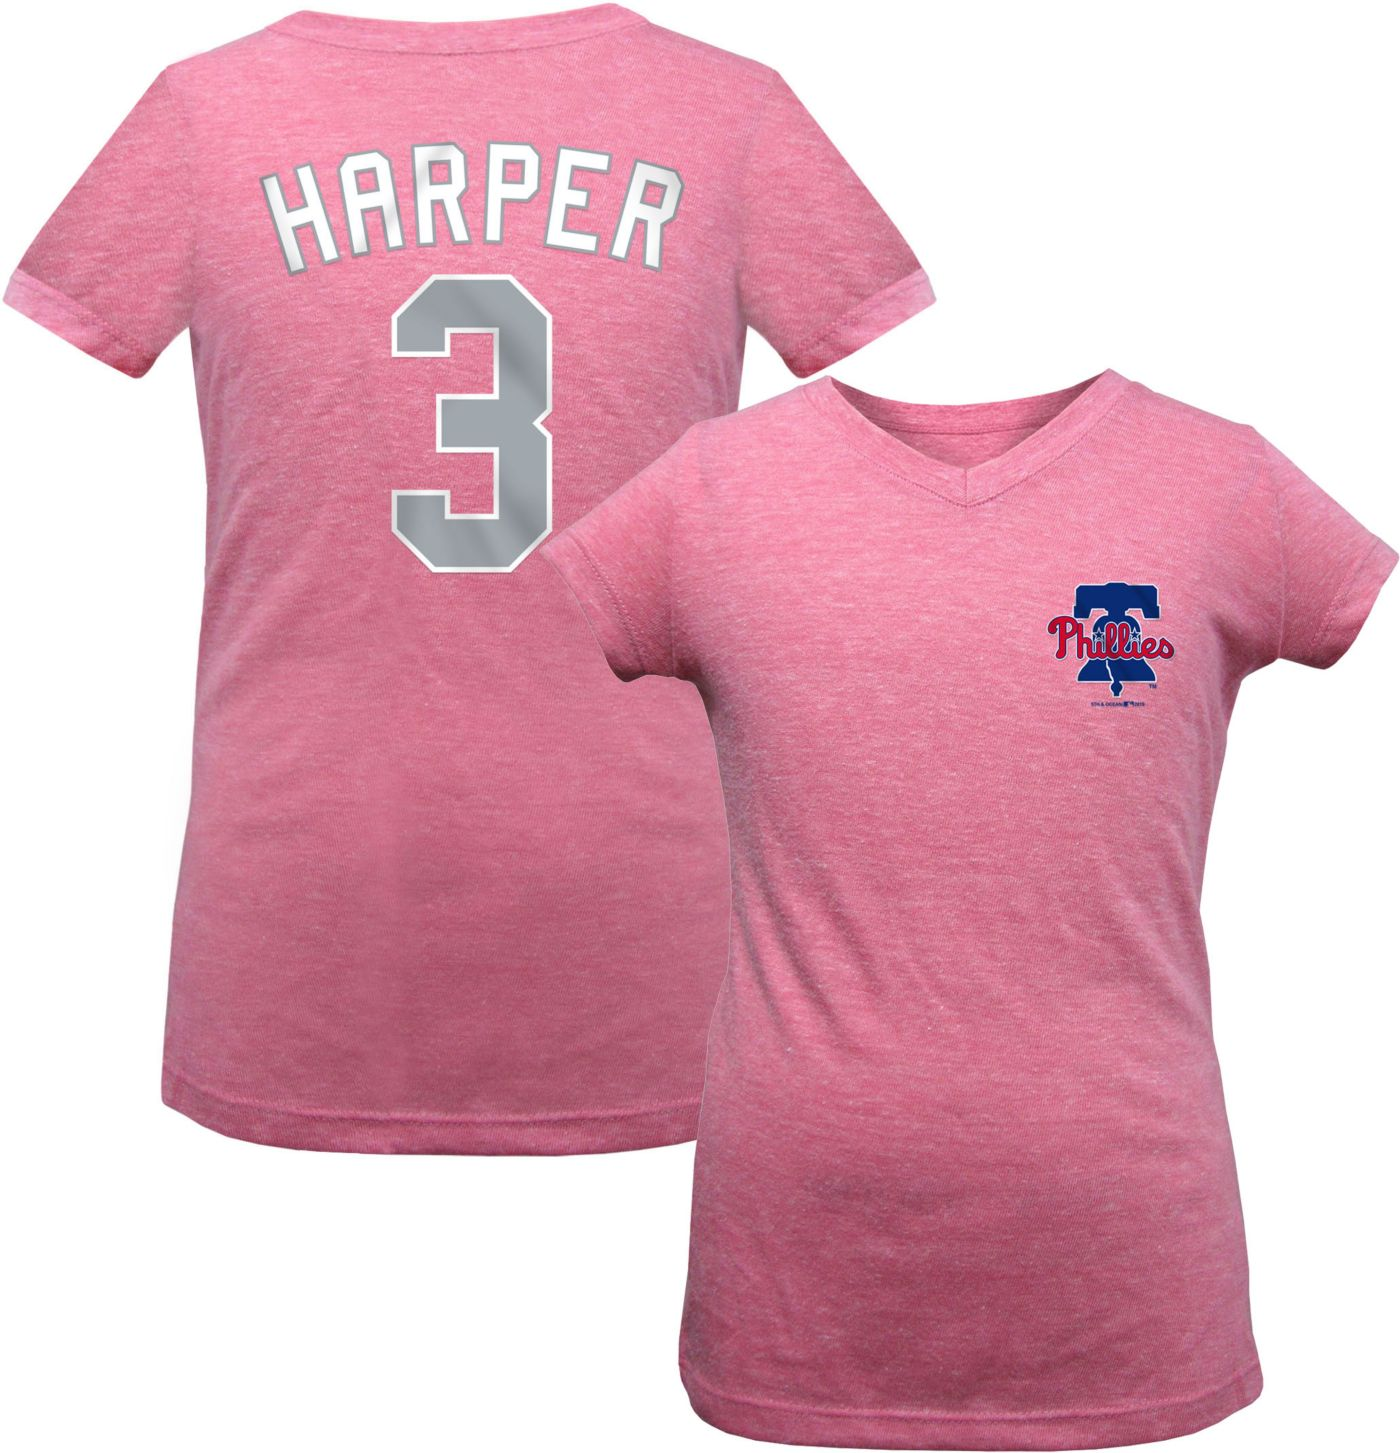 New Era Youth Girls' Philadelphia Phillies Bryce Harper Tri-Blend T-Shirt